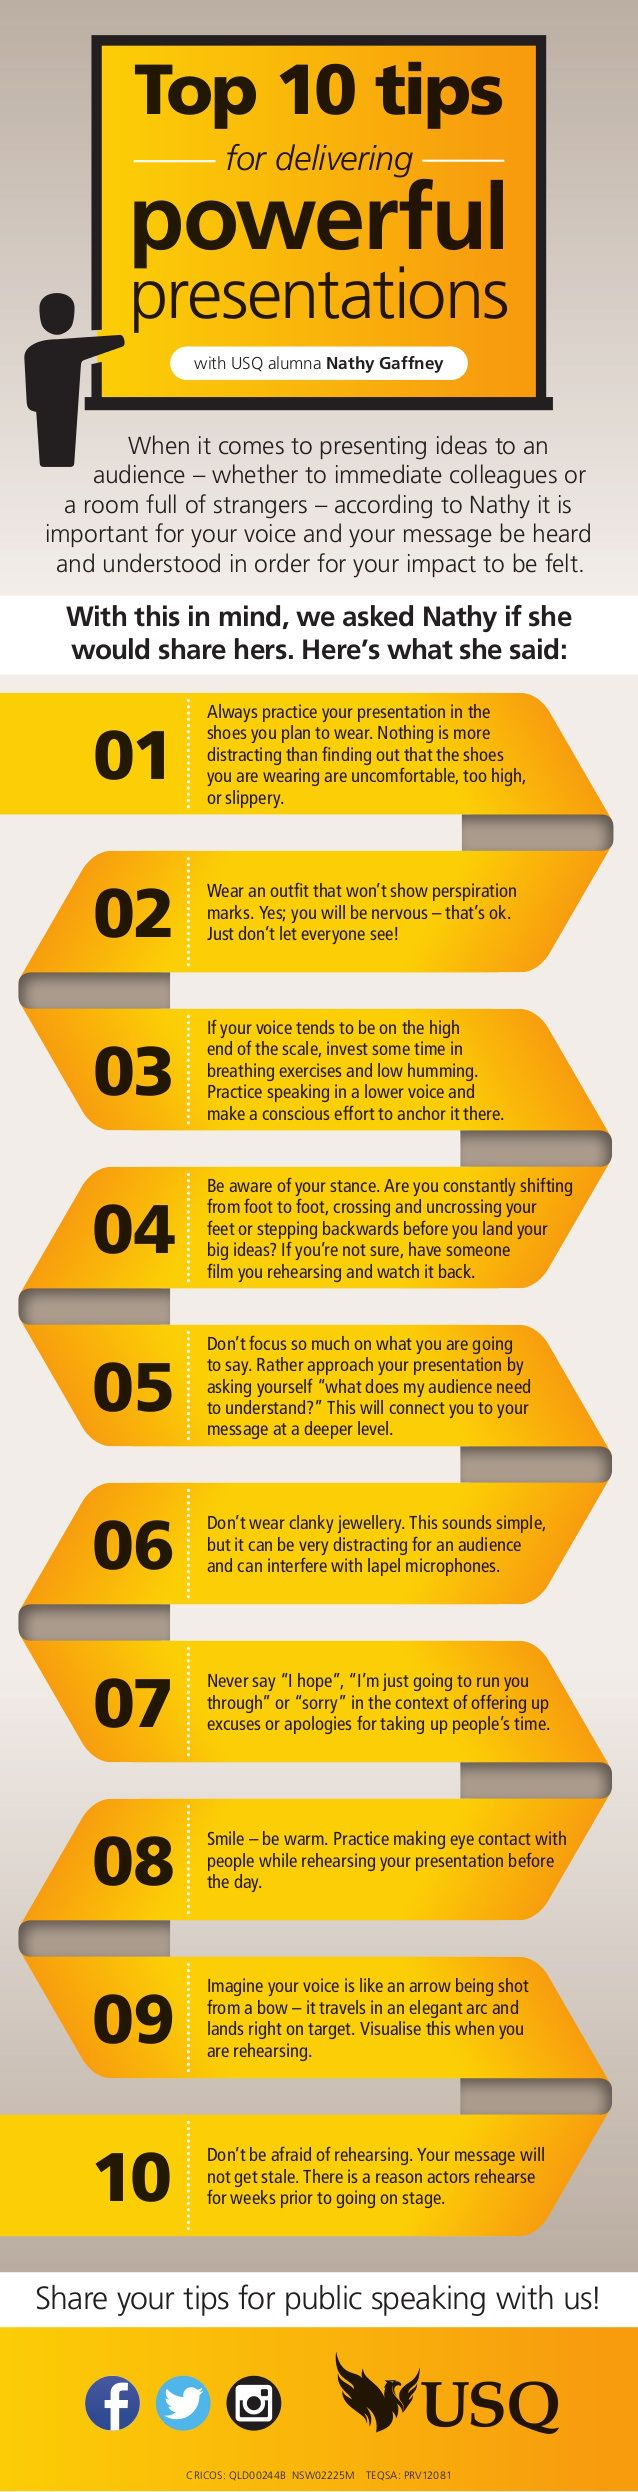 Top 10 tips for delivering powerful presentations #infografia #infographic…